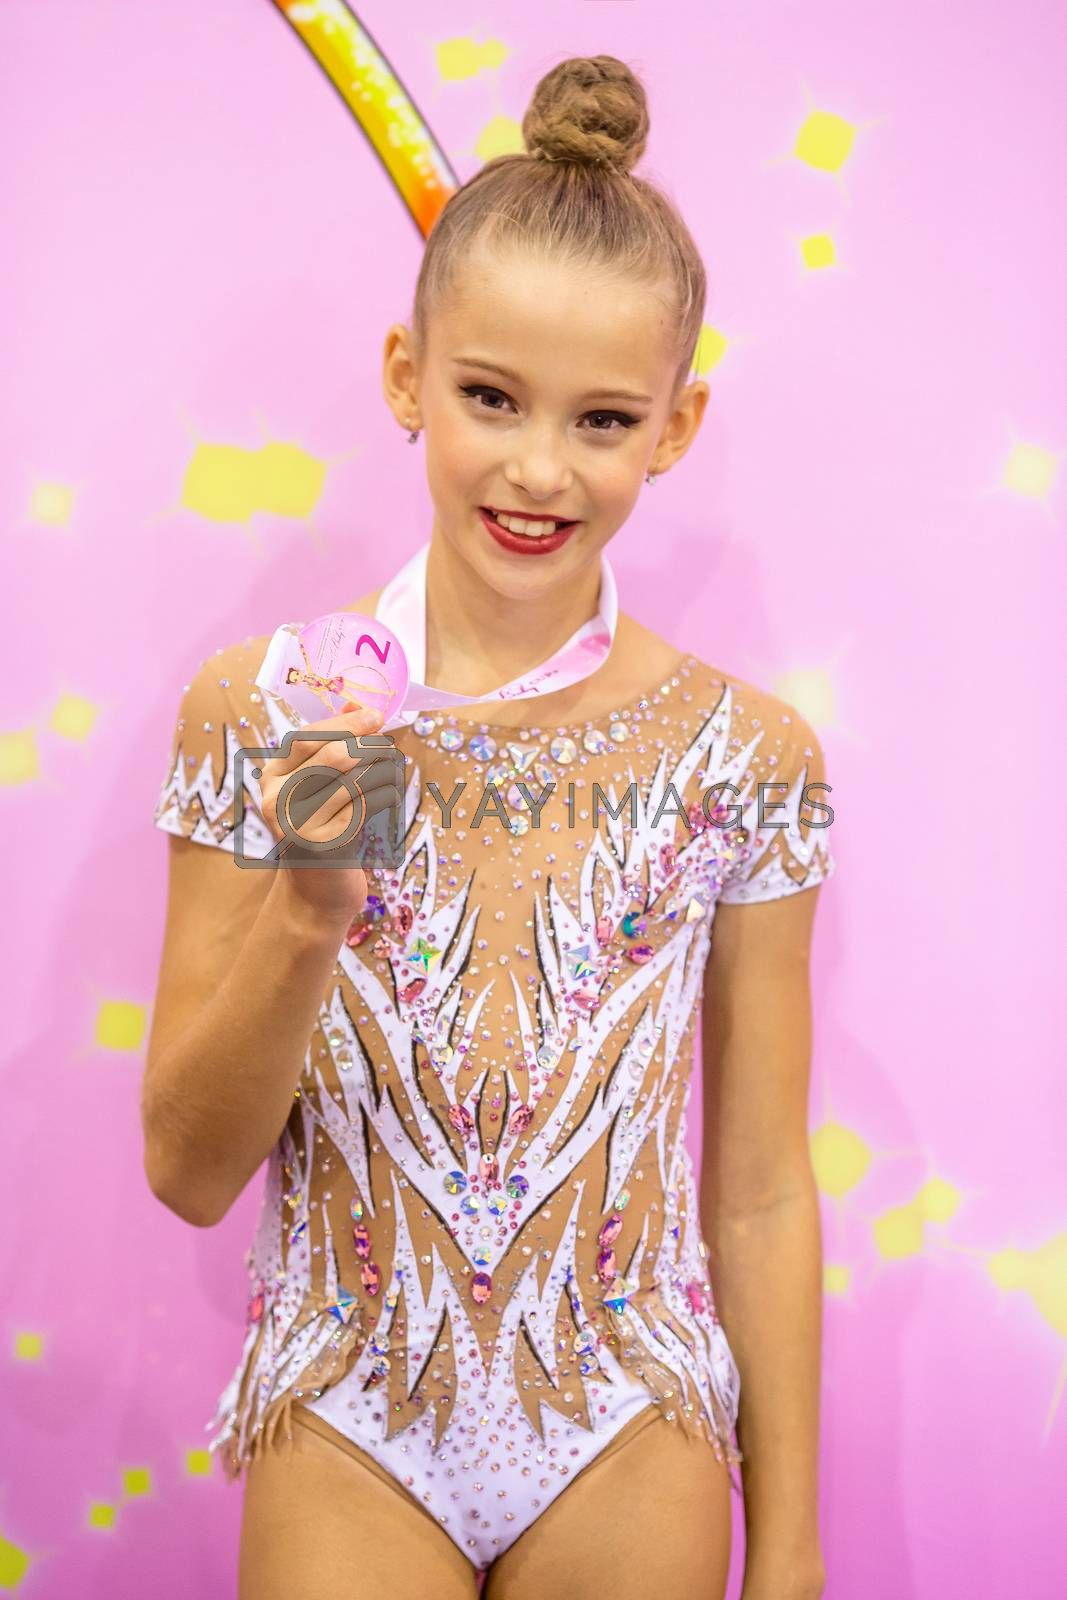 Little gymnast with her sports awards a cup and a medal on the carpet in rhythmic gymnastics